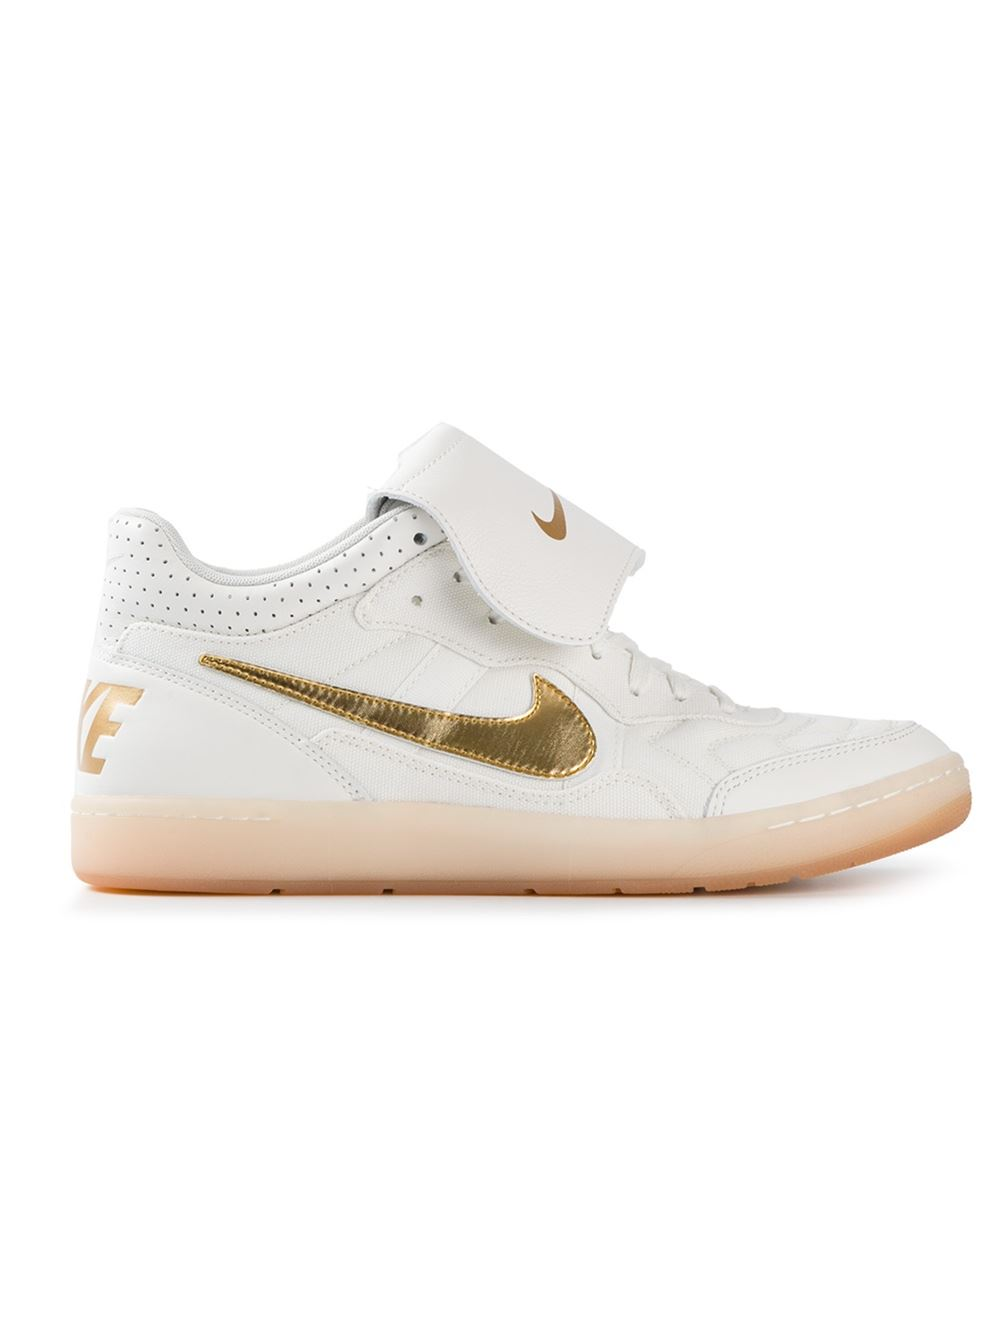 Nike 'mid '94 Tempo Gold Limited' Sneakers - Elite - Farfetch.com